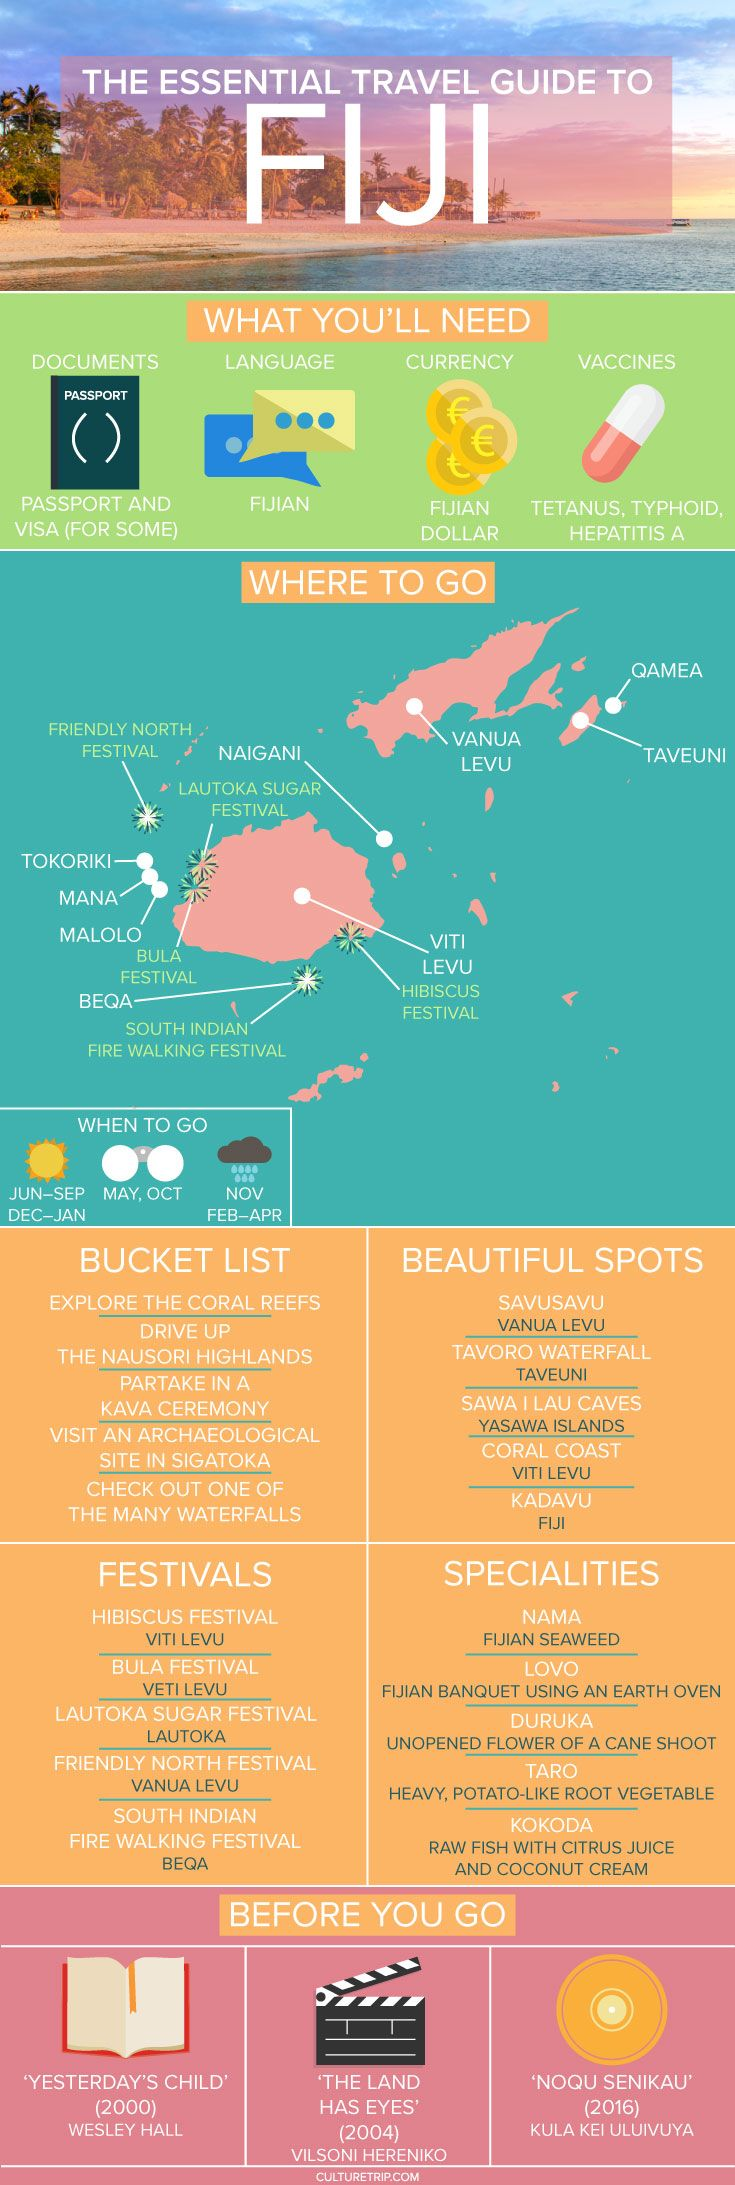 The Essential Travel Guide to Fiji (Infographic)